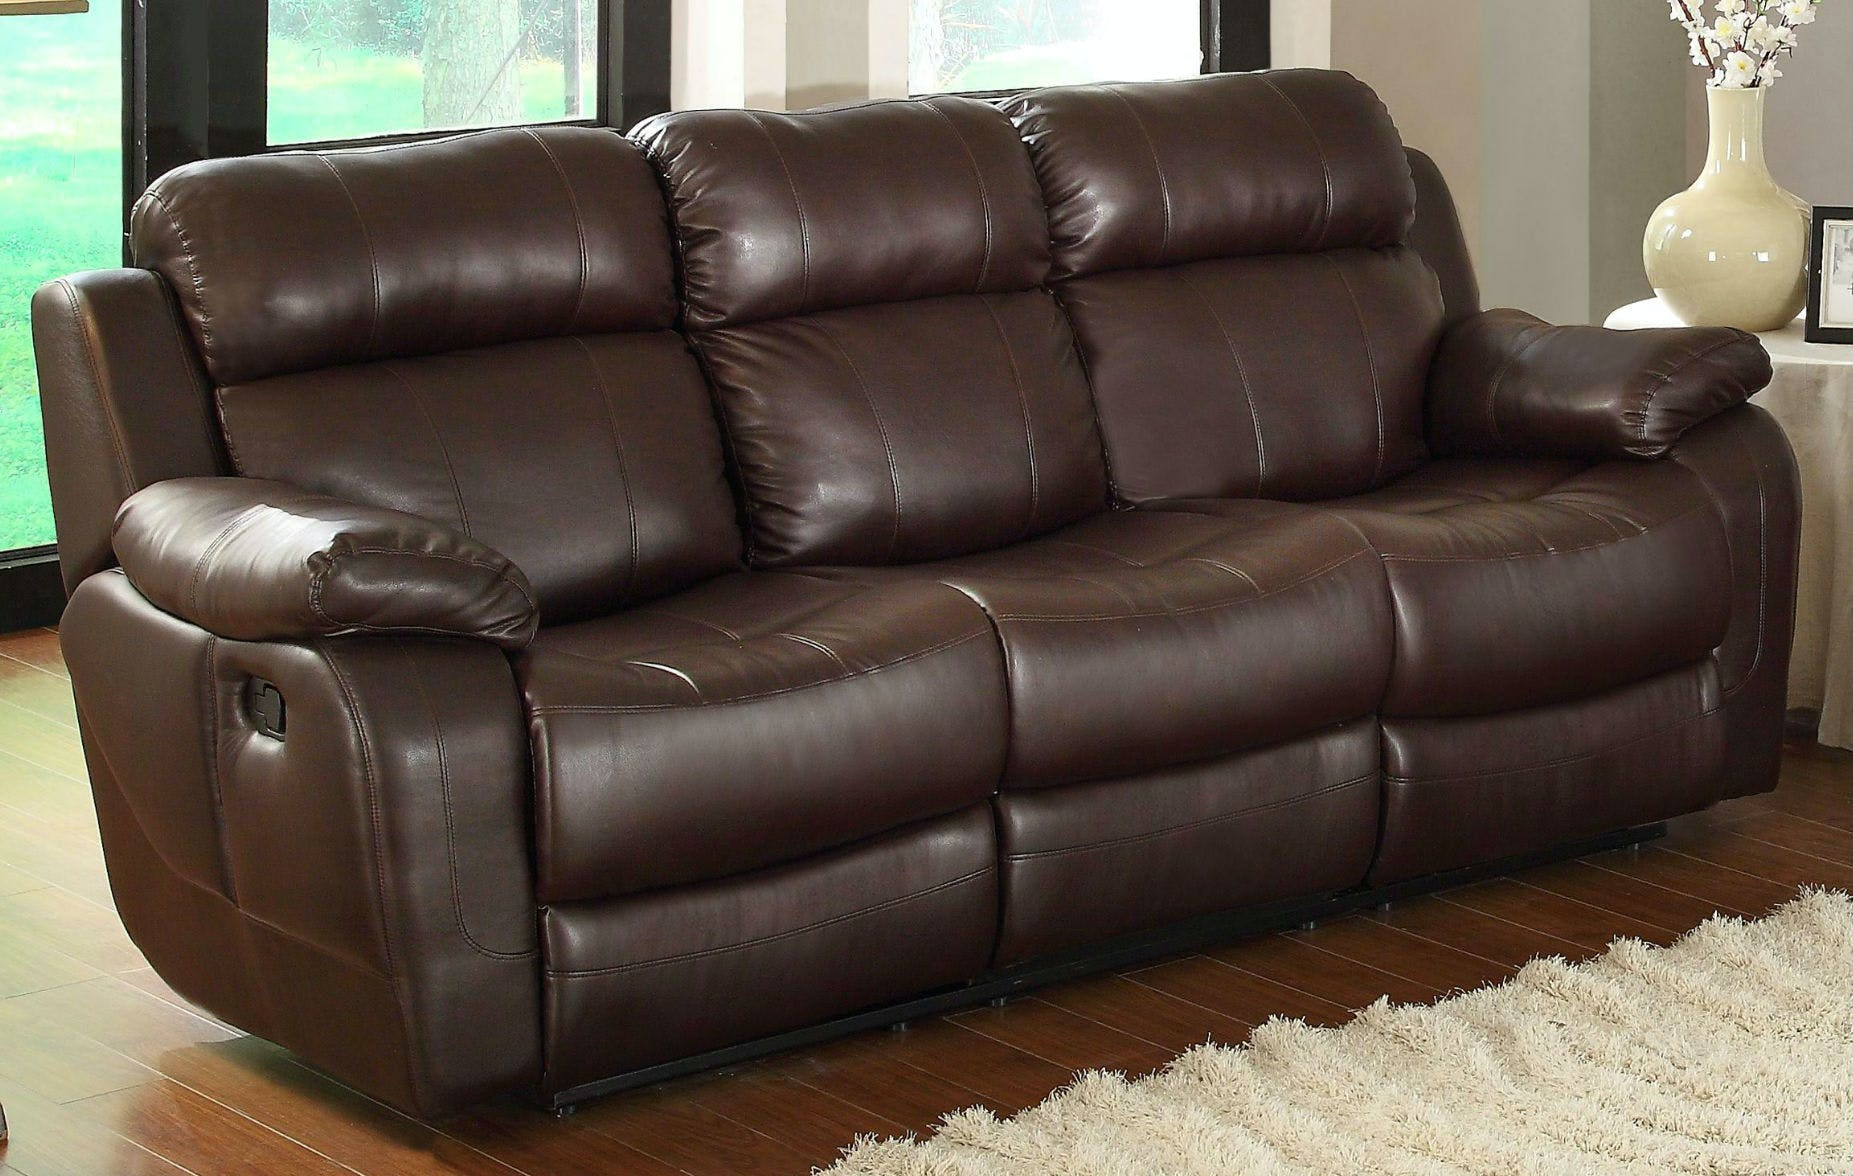 Homelegance Living Room Double Reclining Sofa With Center Drop Down Cup Holders 9724brw 3